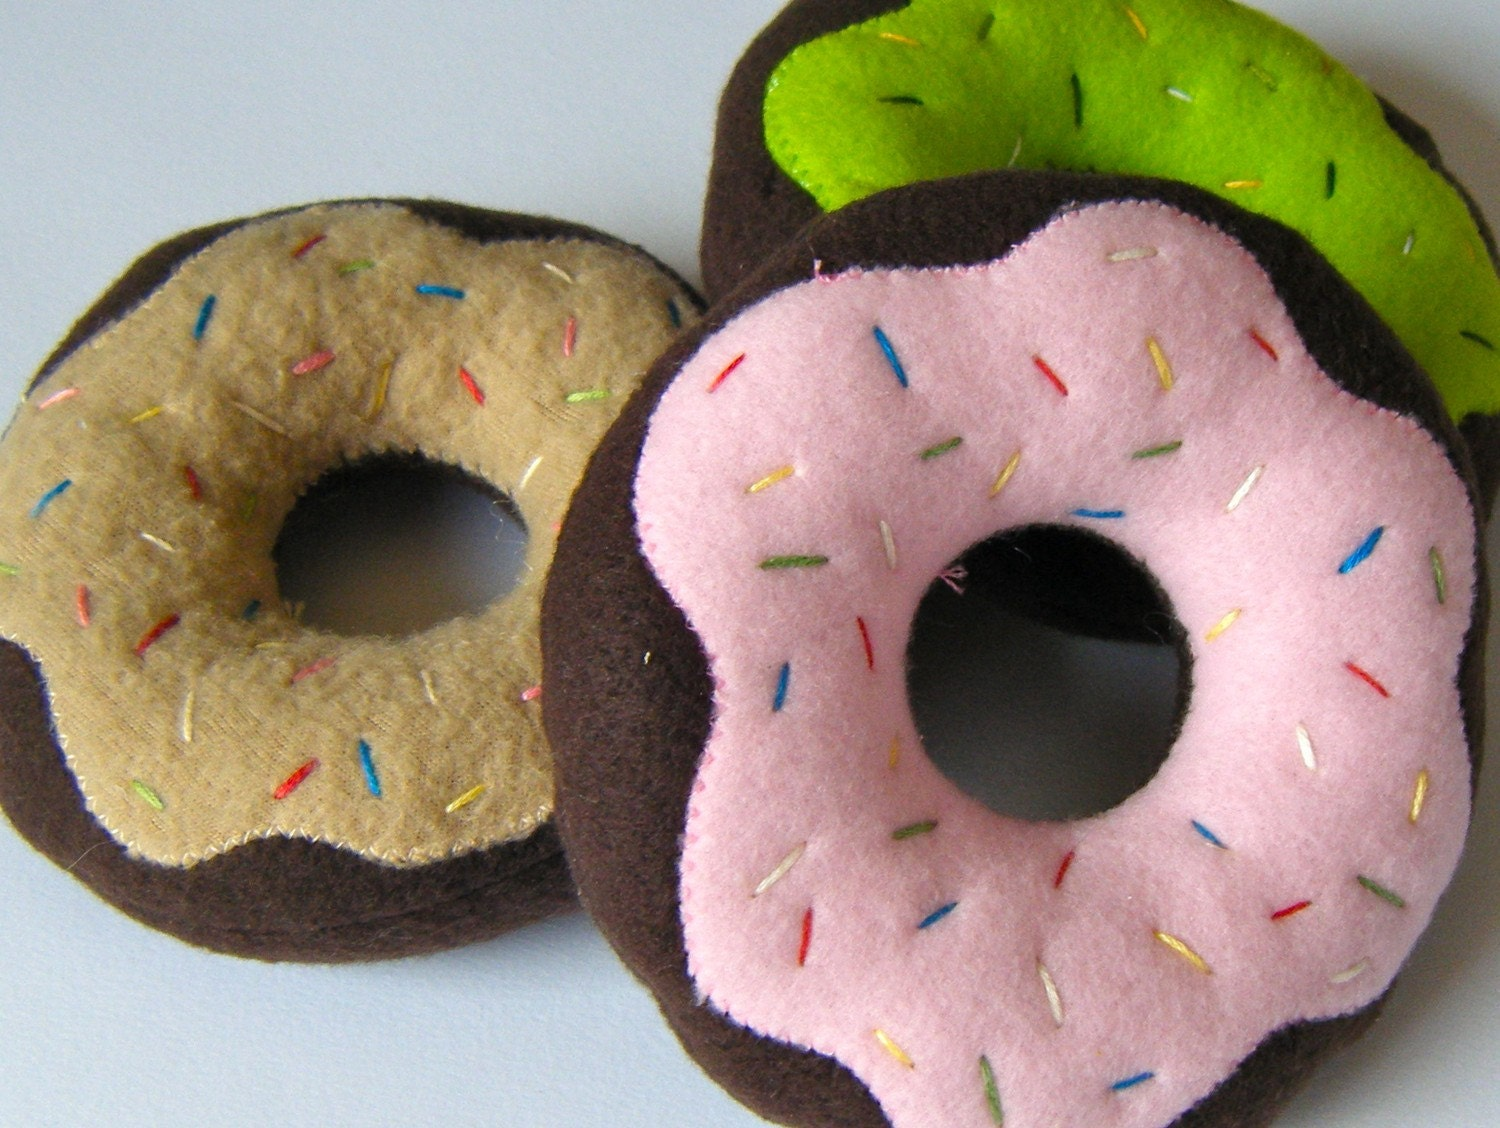 Yummy Heart Shaped Donut Squeaker Toys